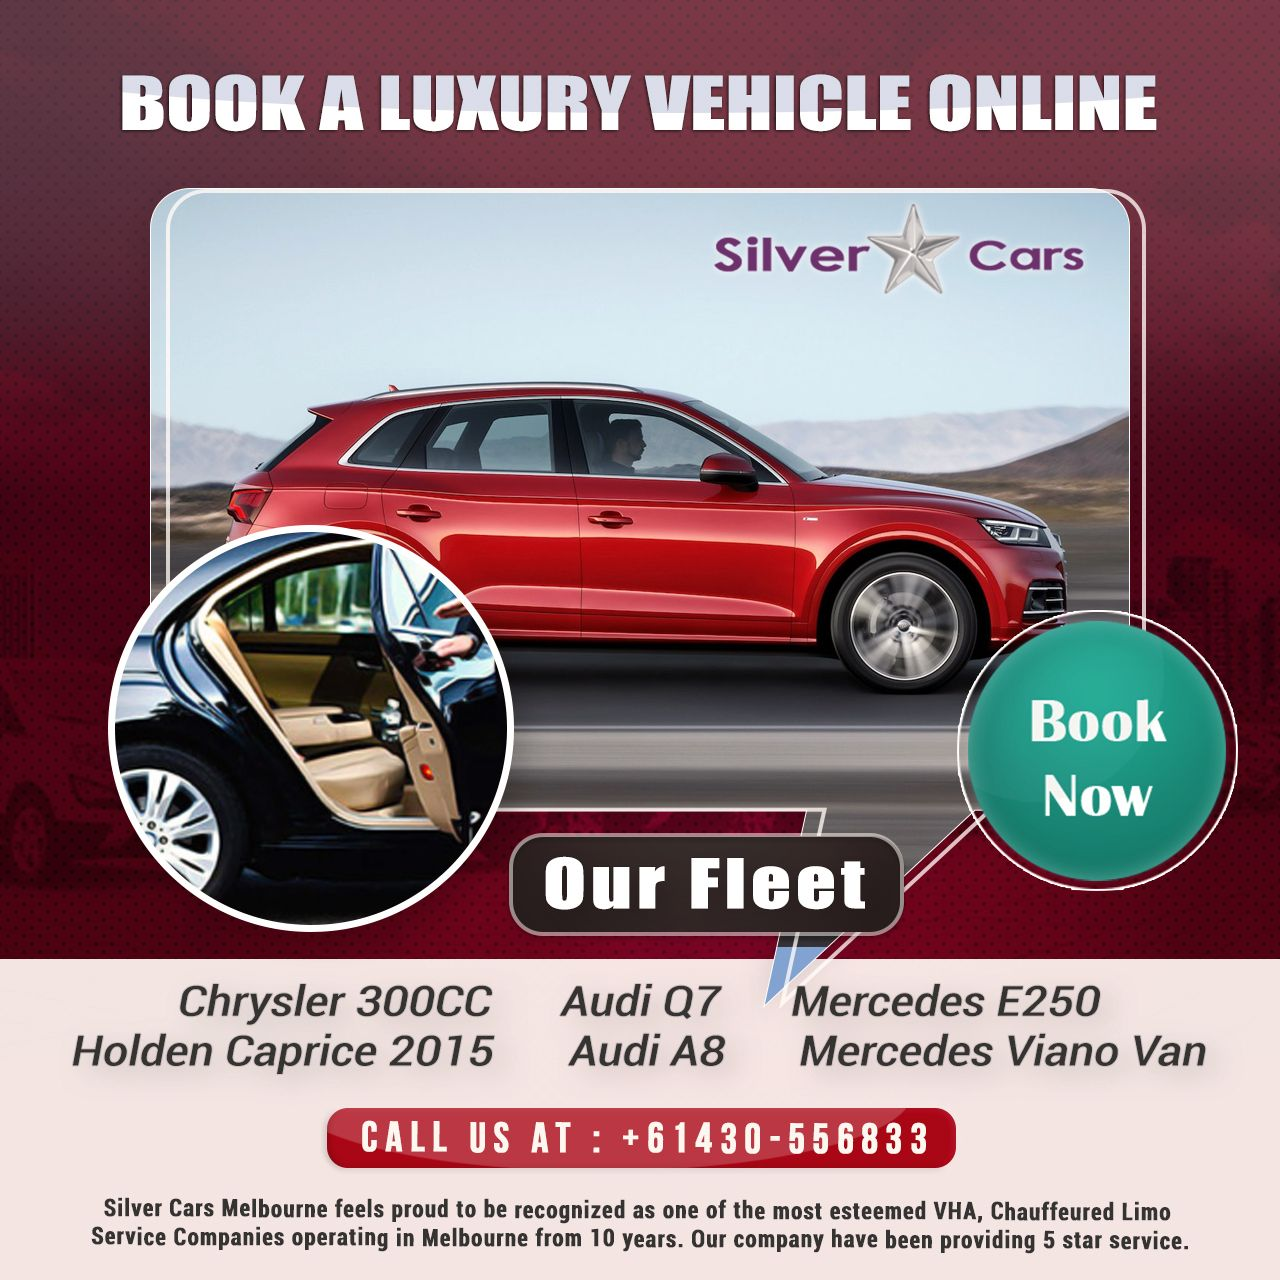 Silver Star Cars provide cars for the rental purpose in